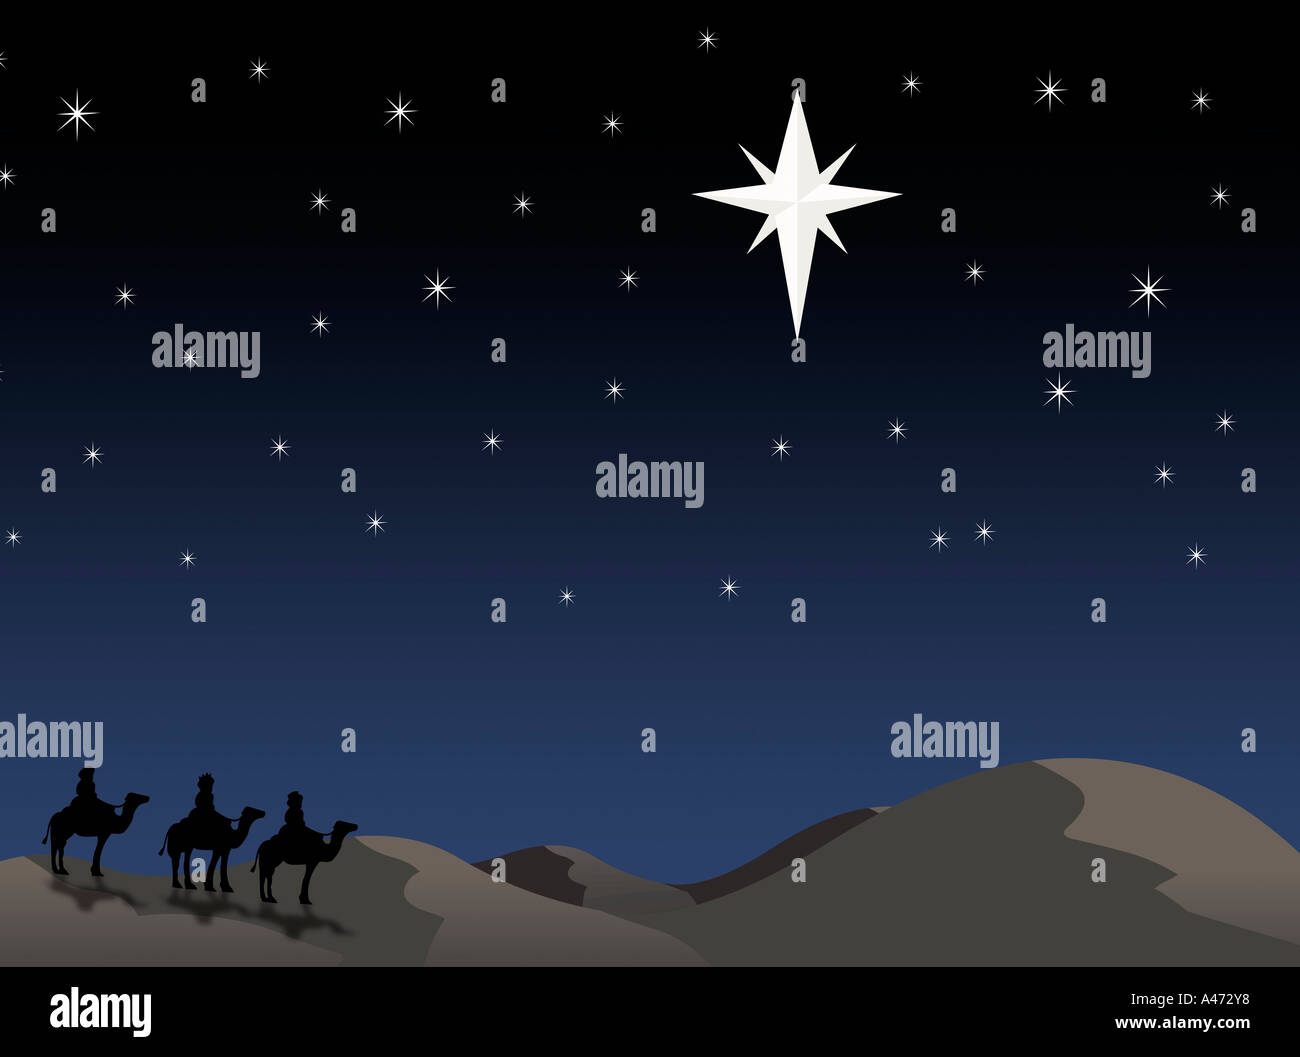 North Star Christmas Stock Photos & North Star Christmas Stock ...